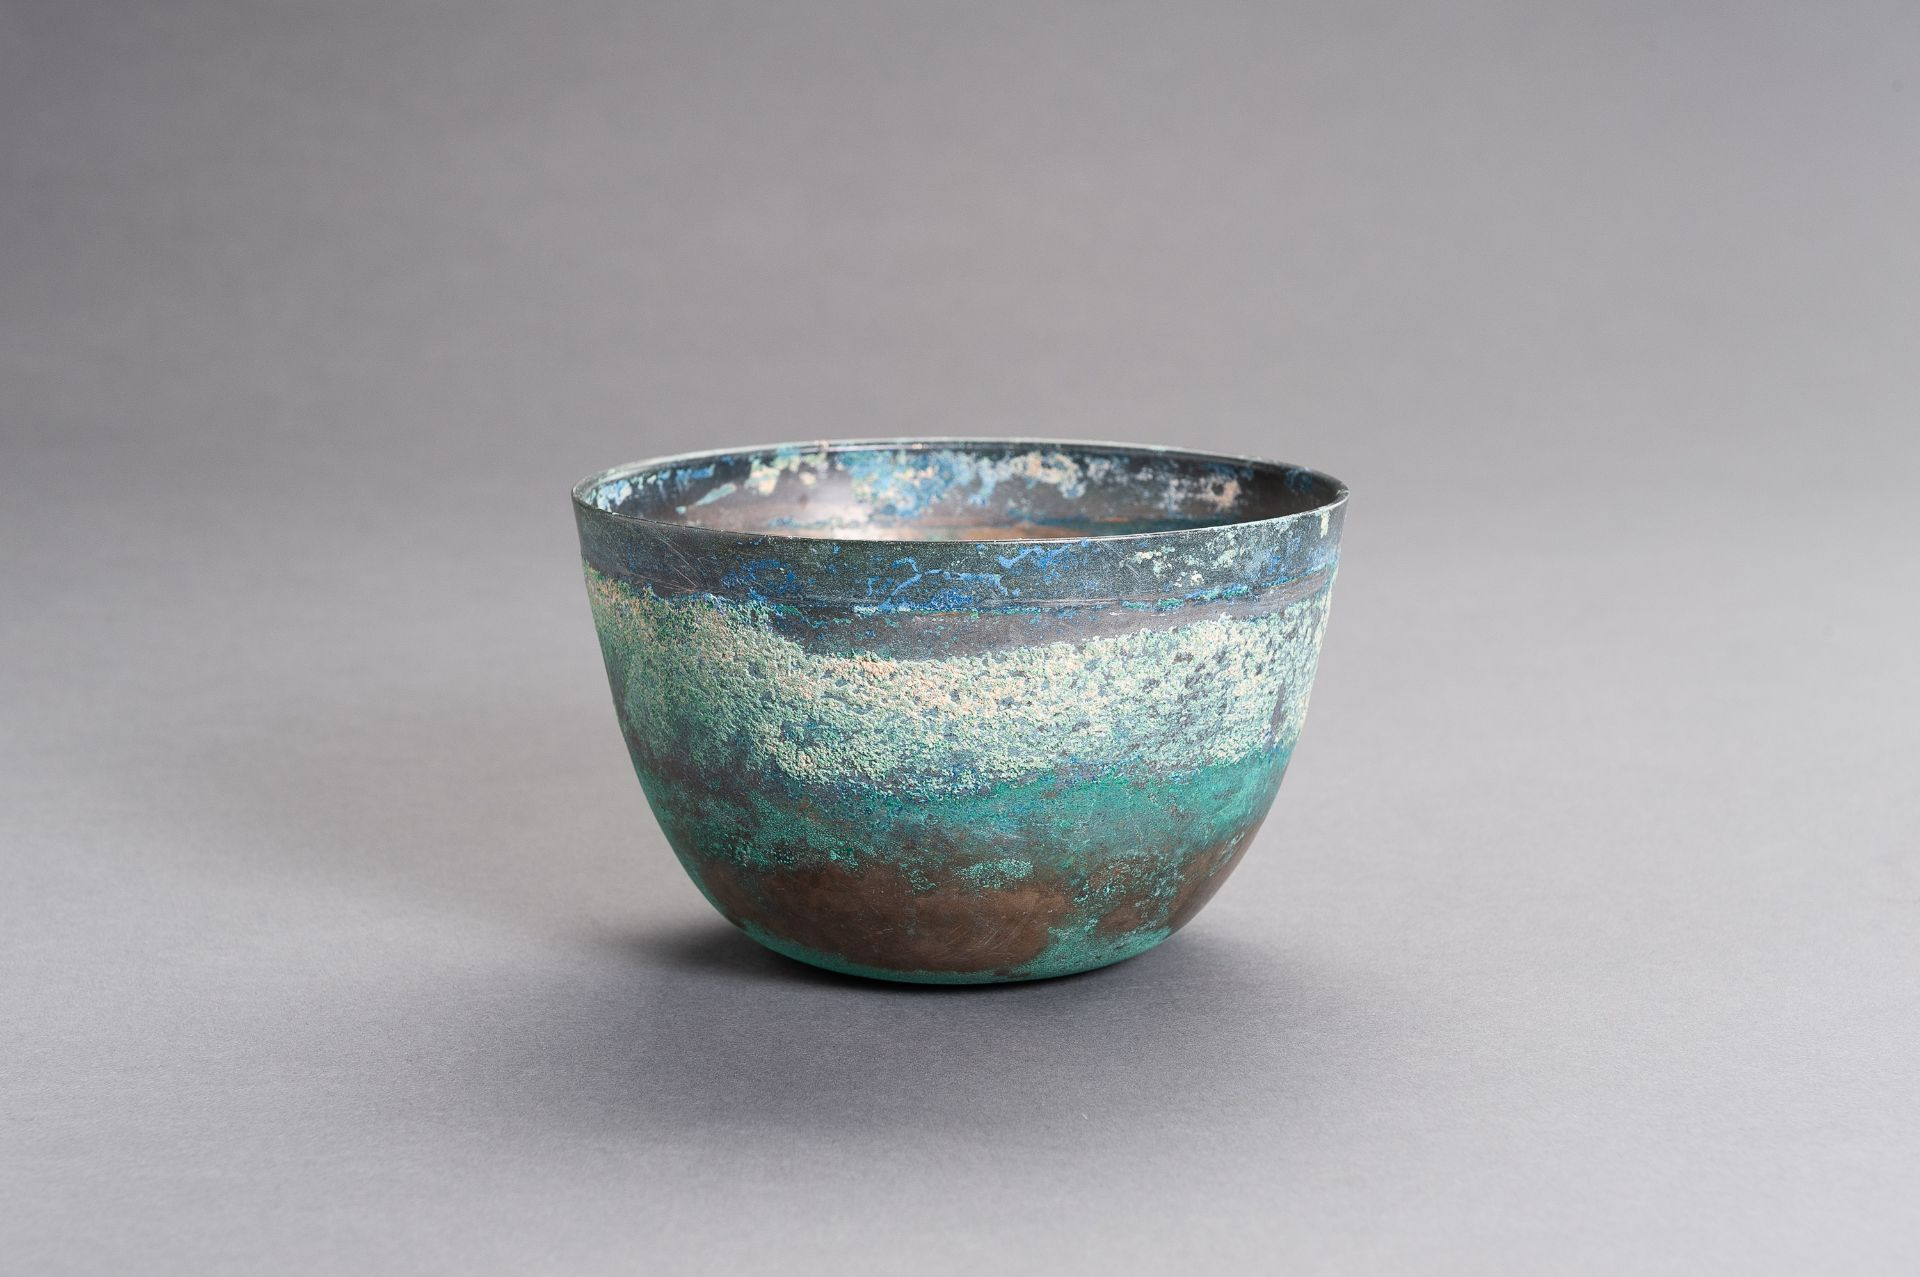 A CHINESE BRONZE BOWL, HAN